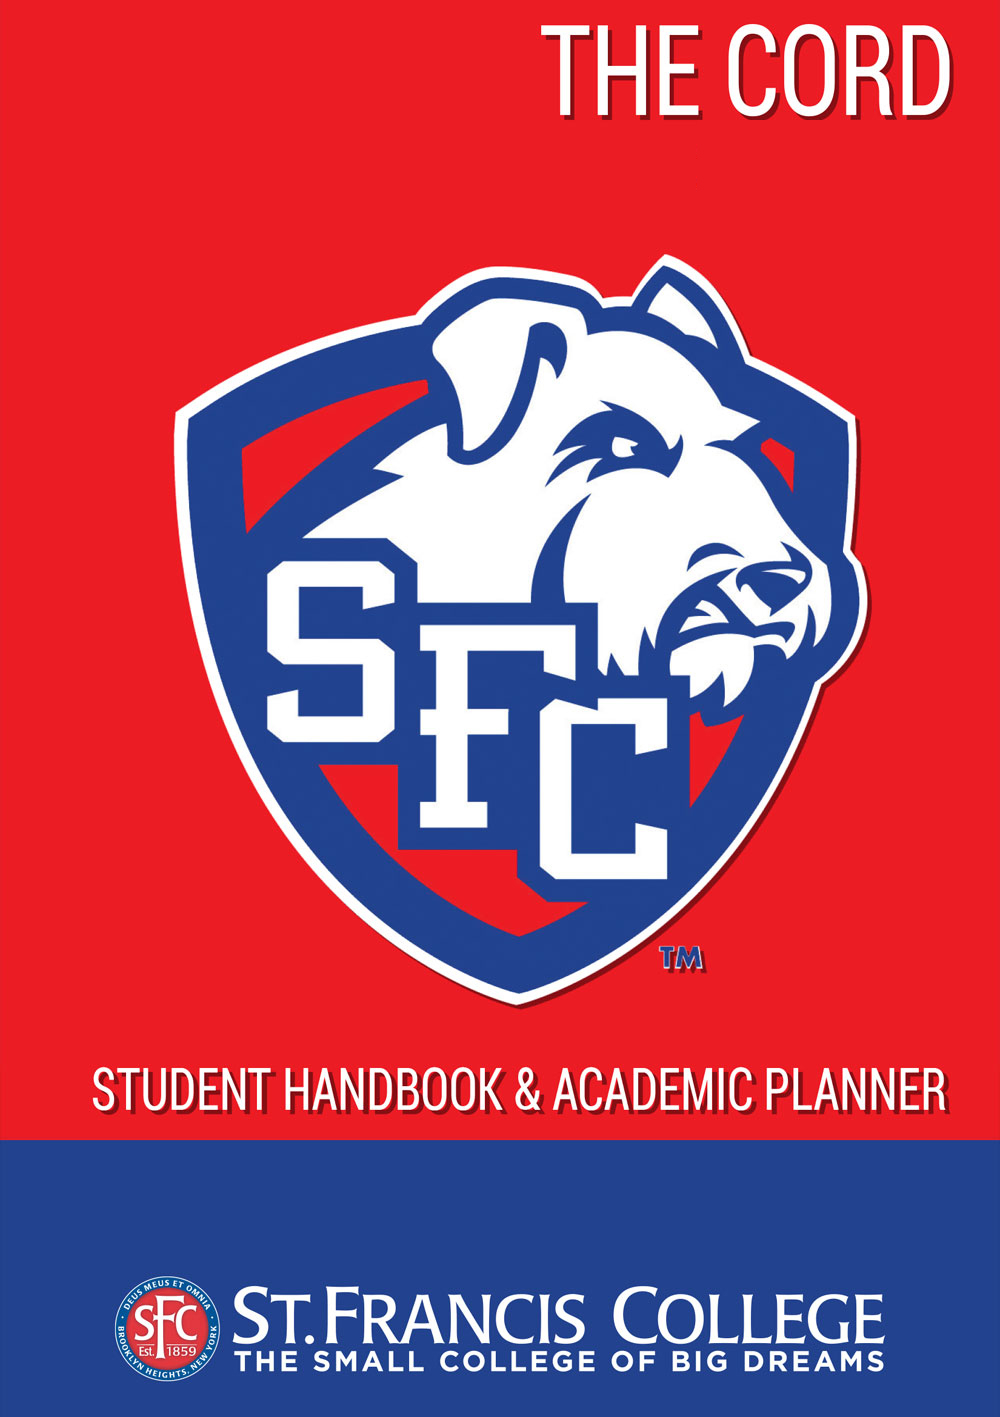 Student Life - St. Francis College